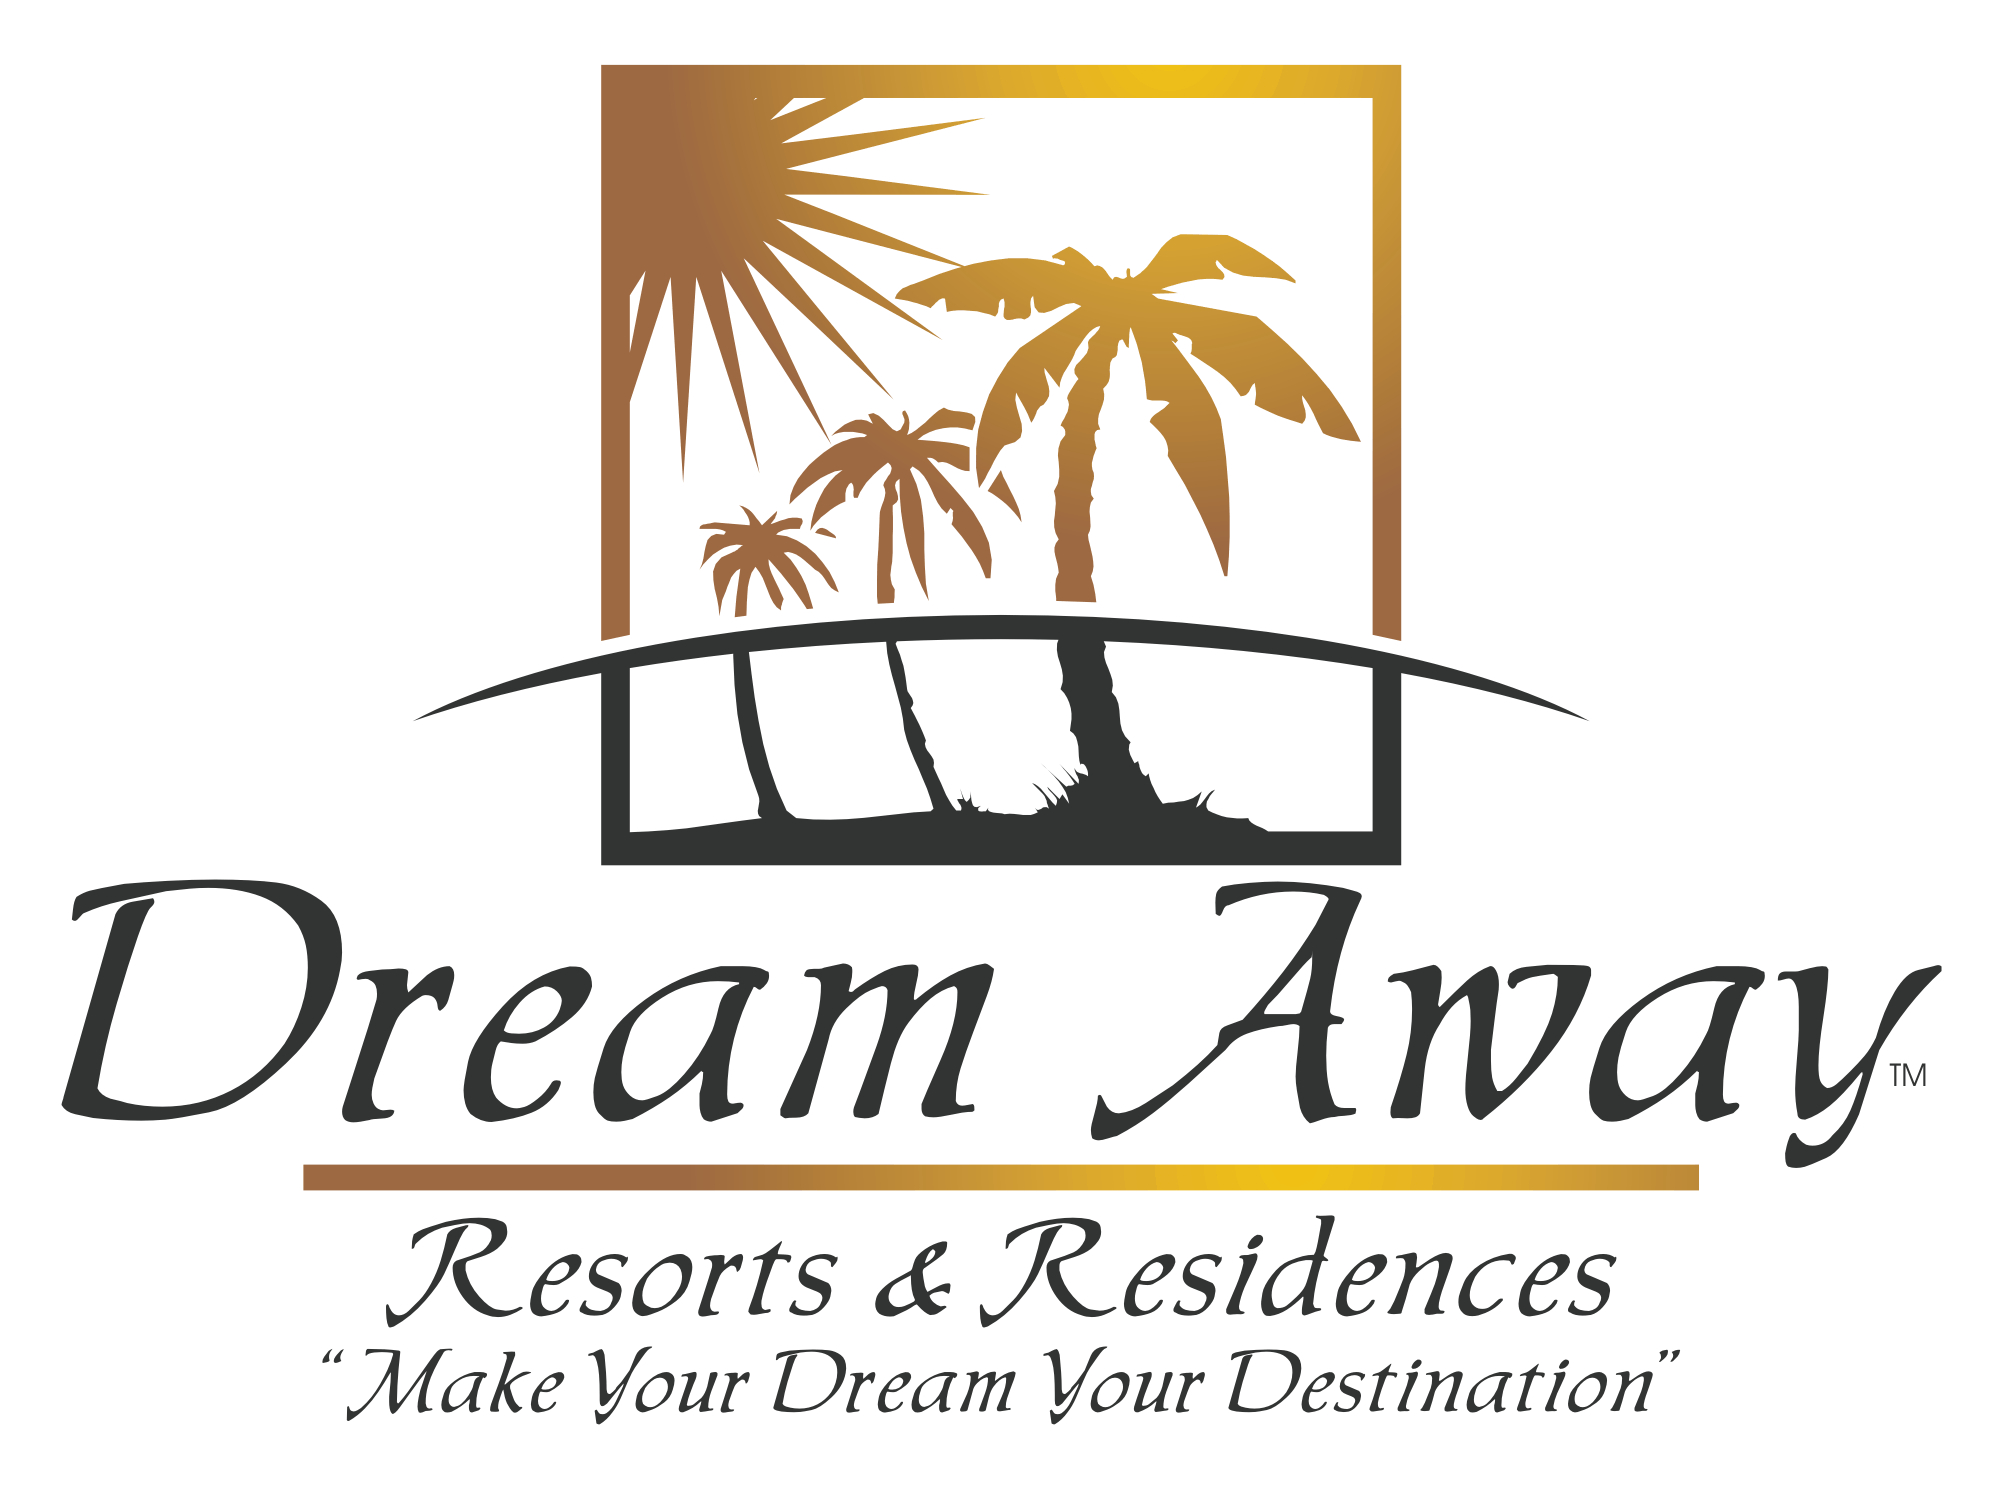 Dream Away Resorts & Residences